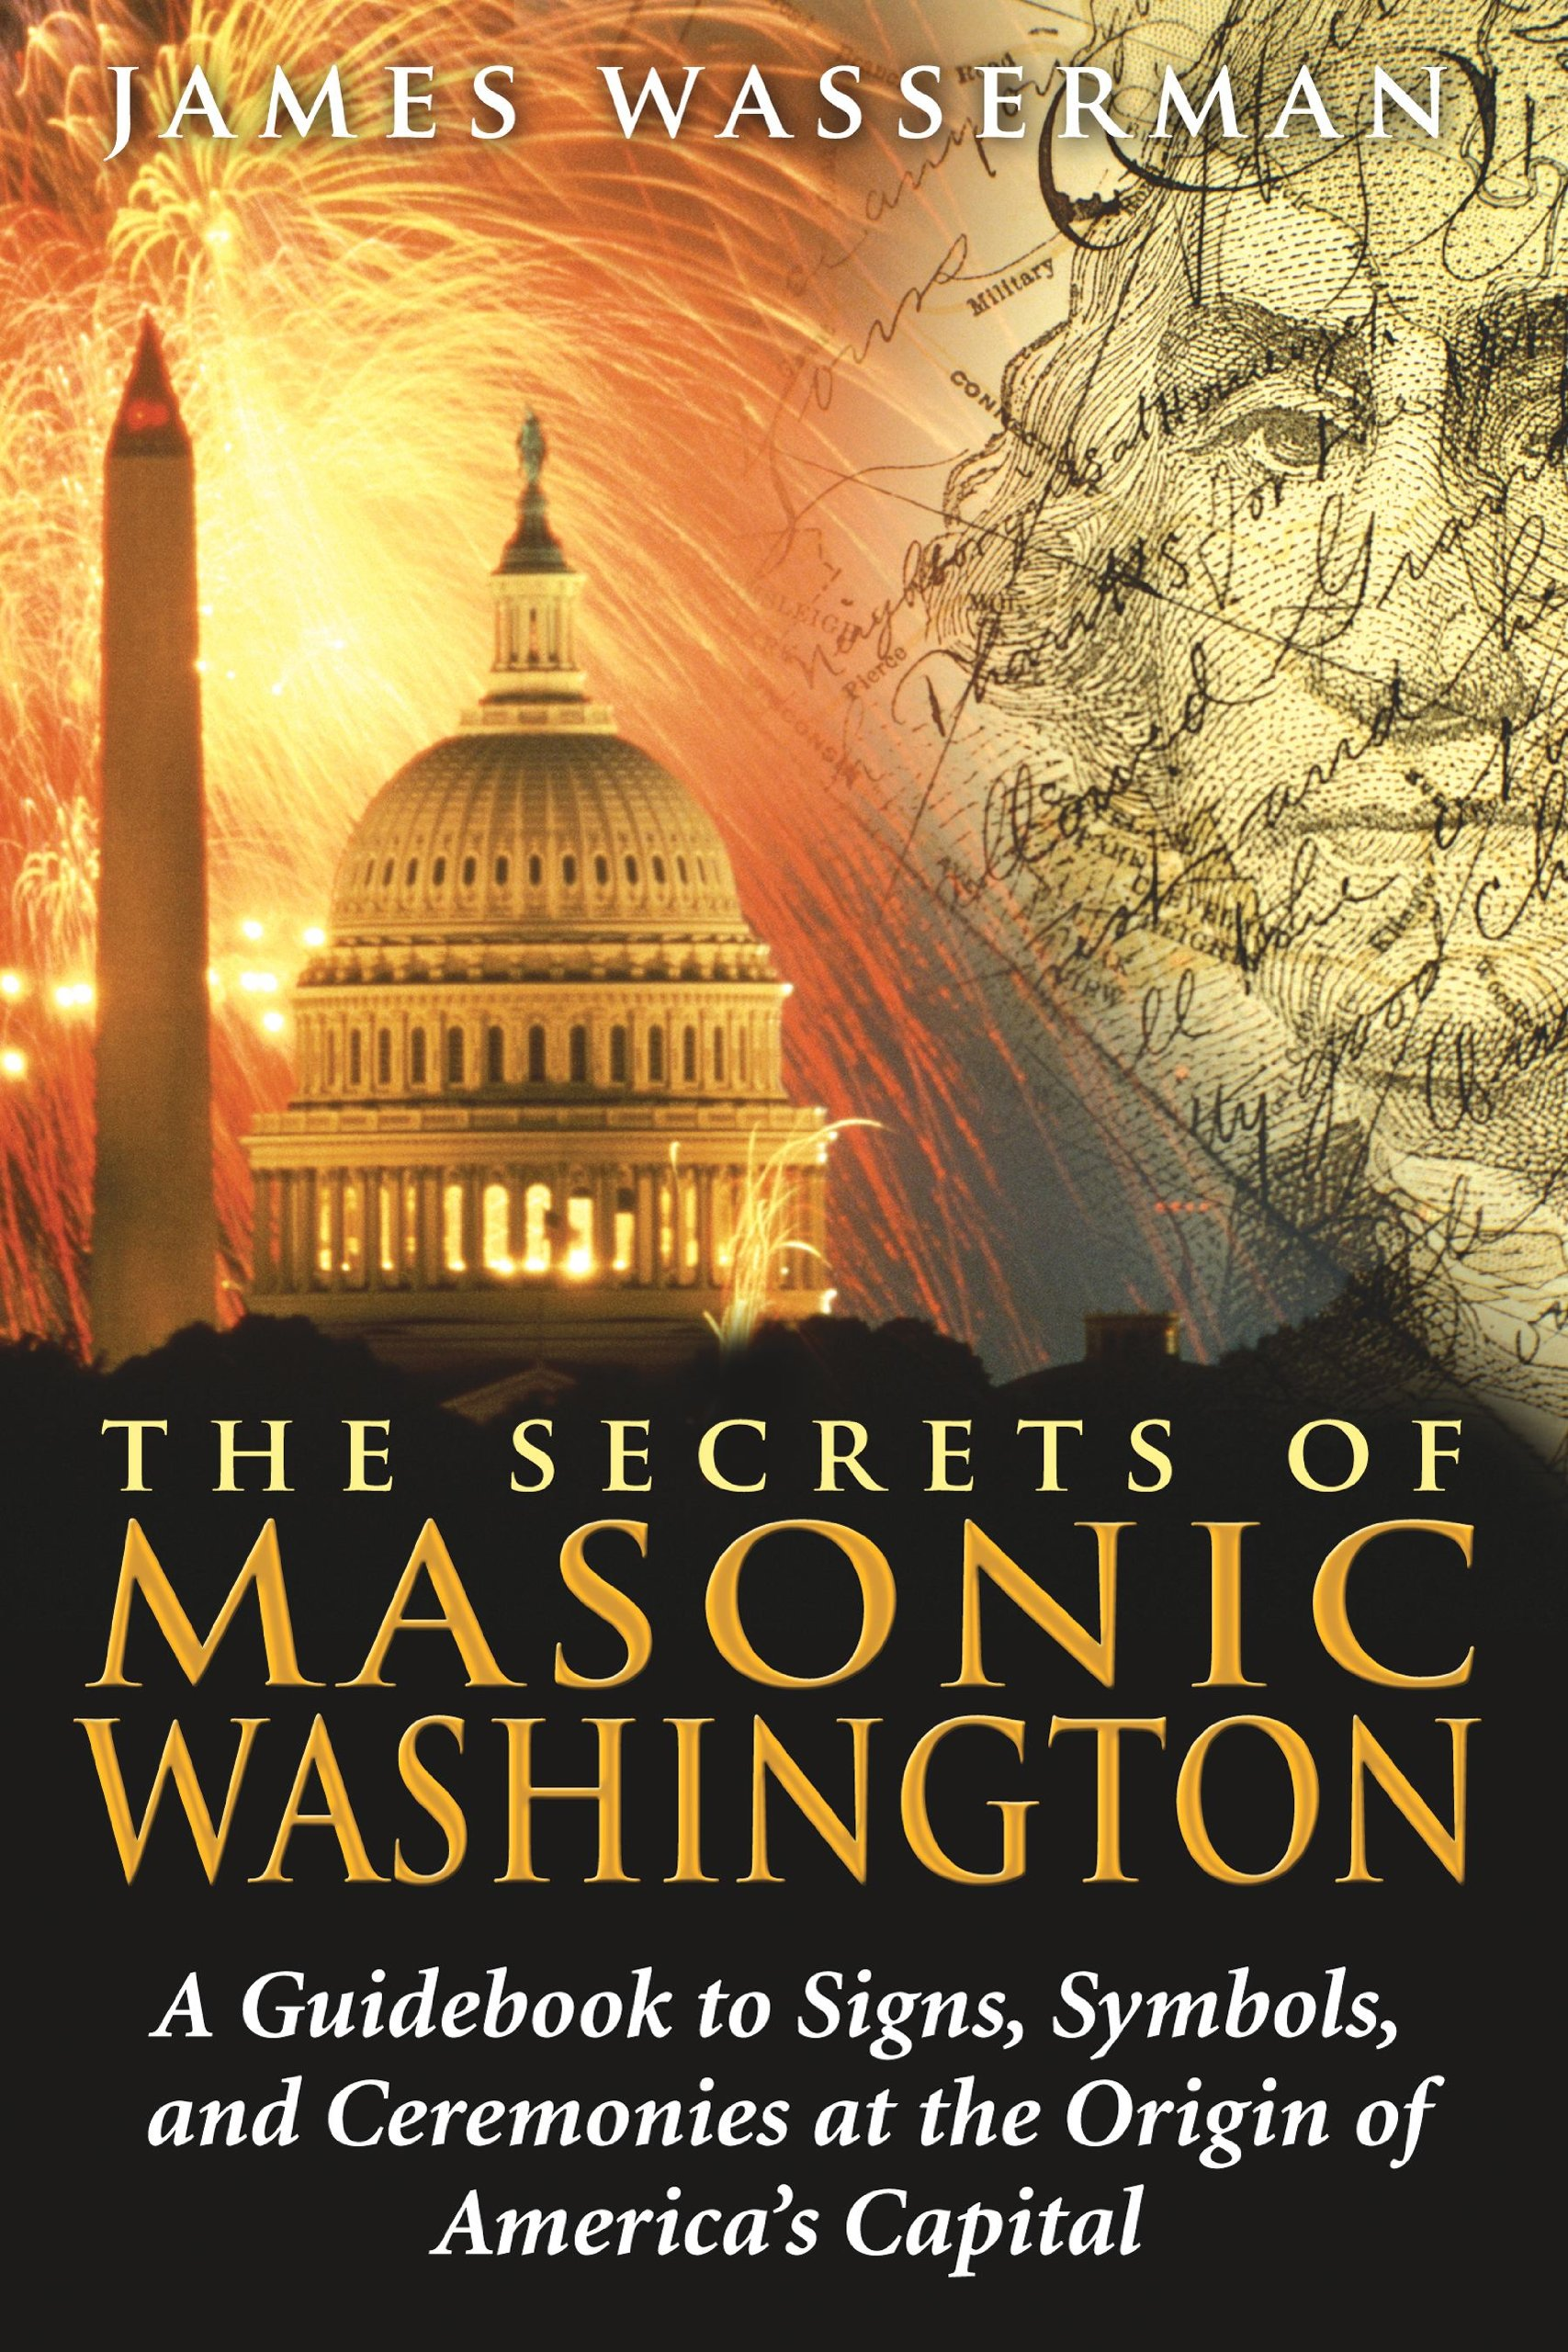 The secrets of masonic washington a guidebook to signs symbols the secrets of masonic washington a guidebook to signs symbols and ceremonies at the origin of americas capital james wasserman 9781594772665 biocorpaavc Images